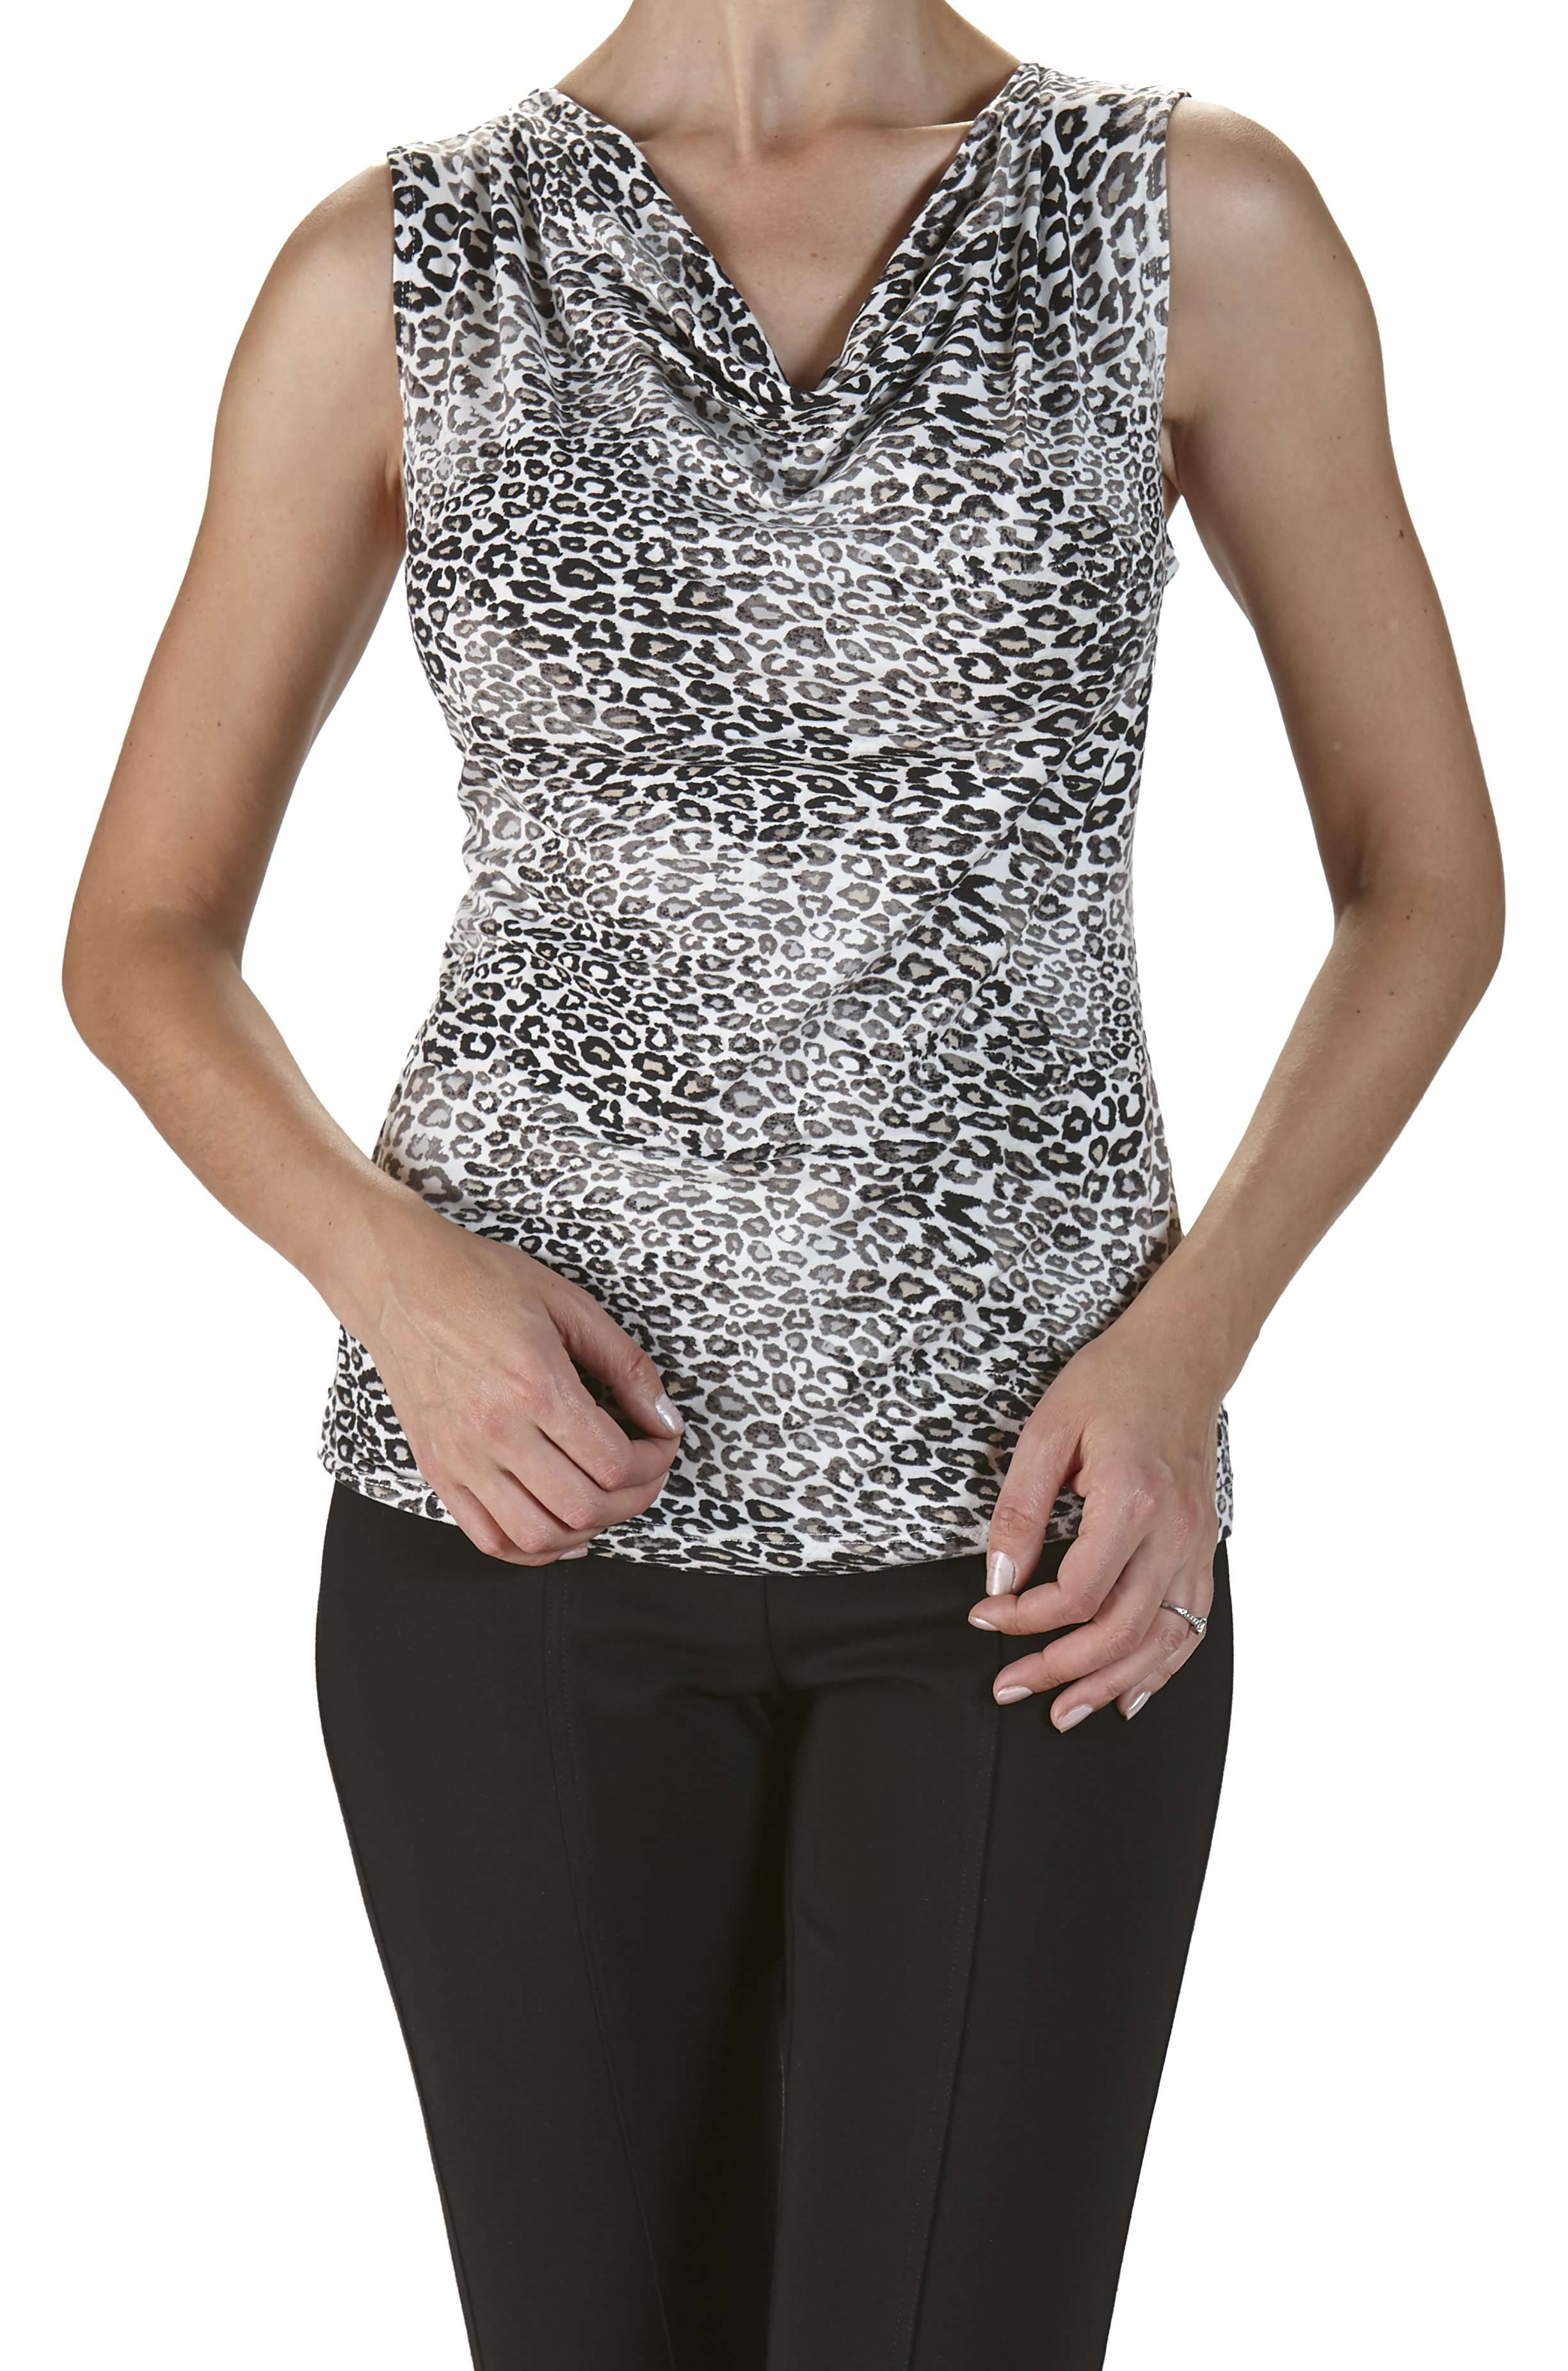 Camisole Animal Print Top Quality On Sale Now - Yvonne Marie